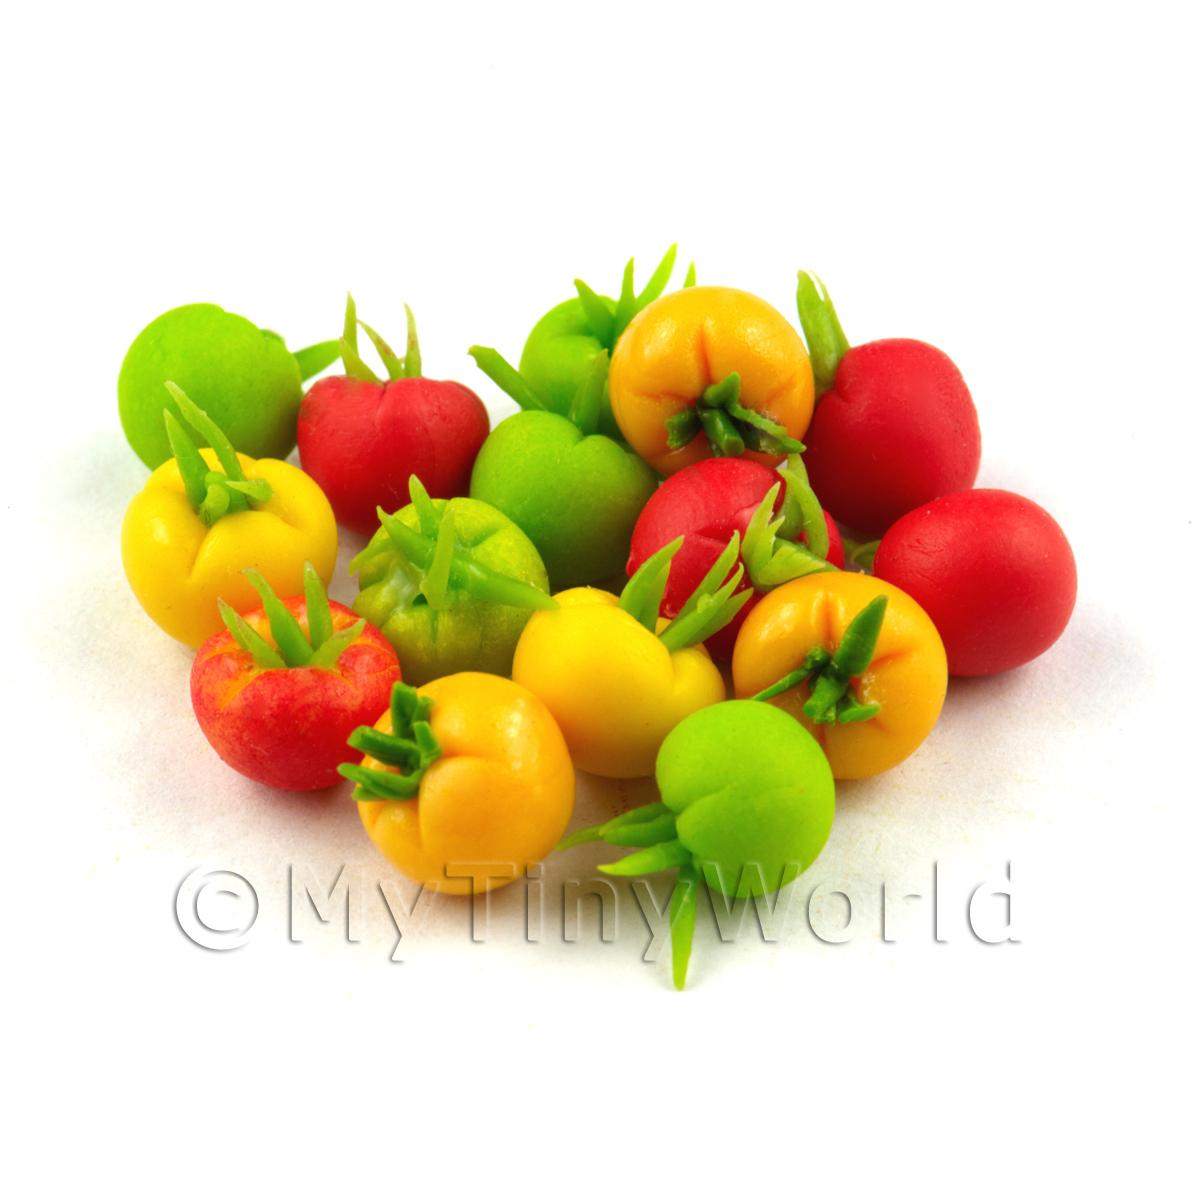 6 Dolls House Miniature Handmade Tomatoes